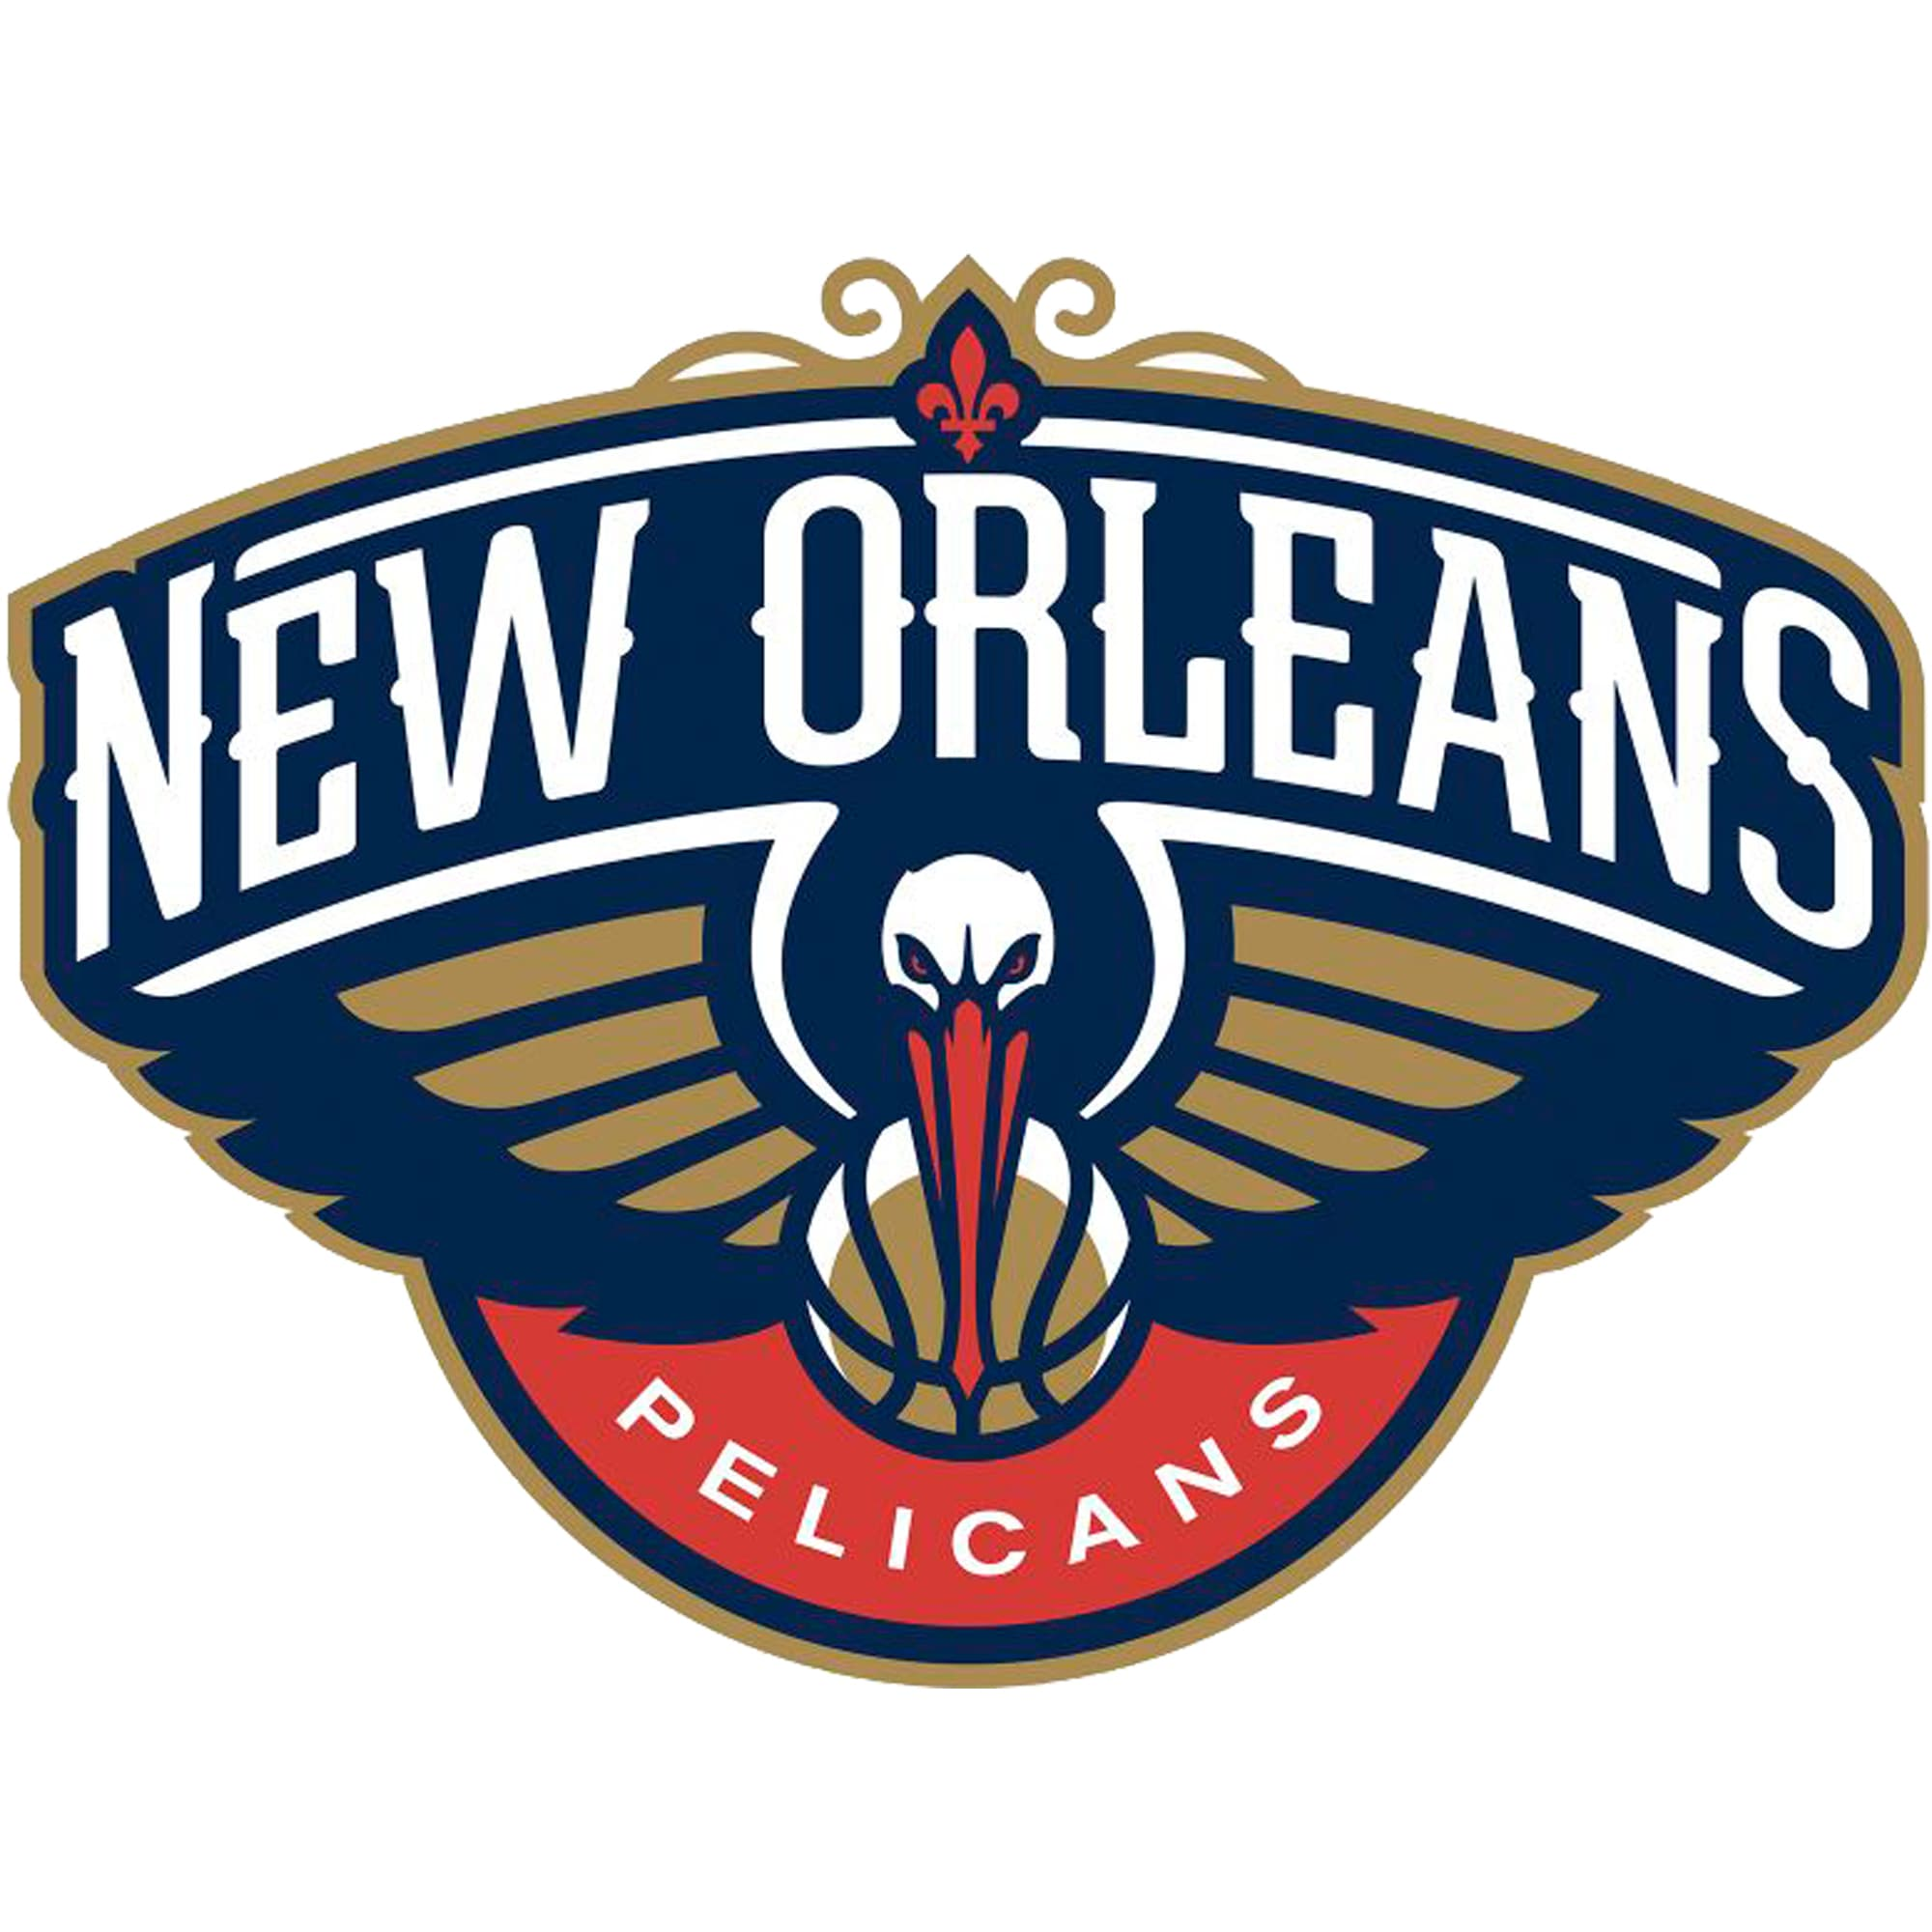 New Orleans Pelicans Fathead Giant Removable Decal